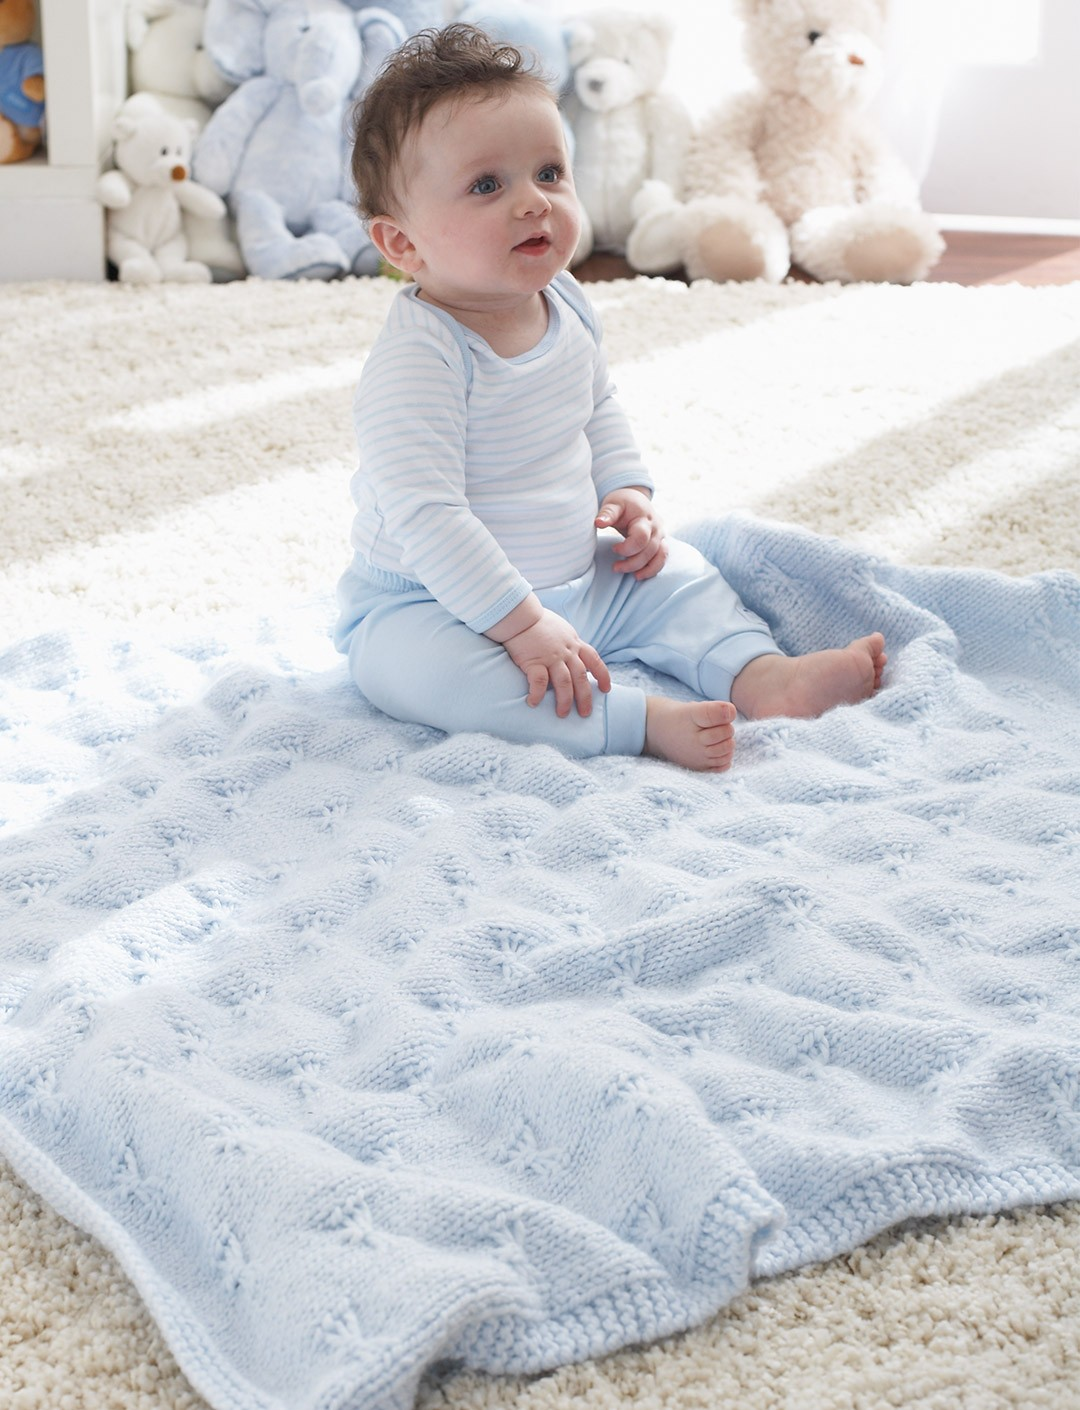 Butterfly Baby Blanket Knitting Pattern : Patons Little Butterfly Baby Blanket, Knit Pattern Yarnspirations